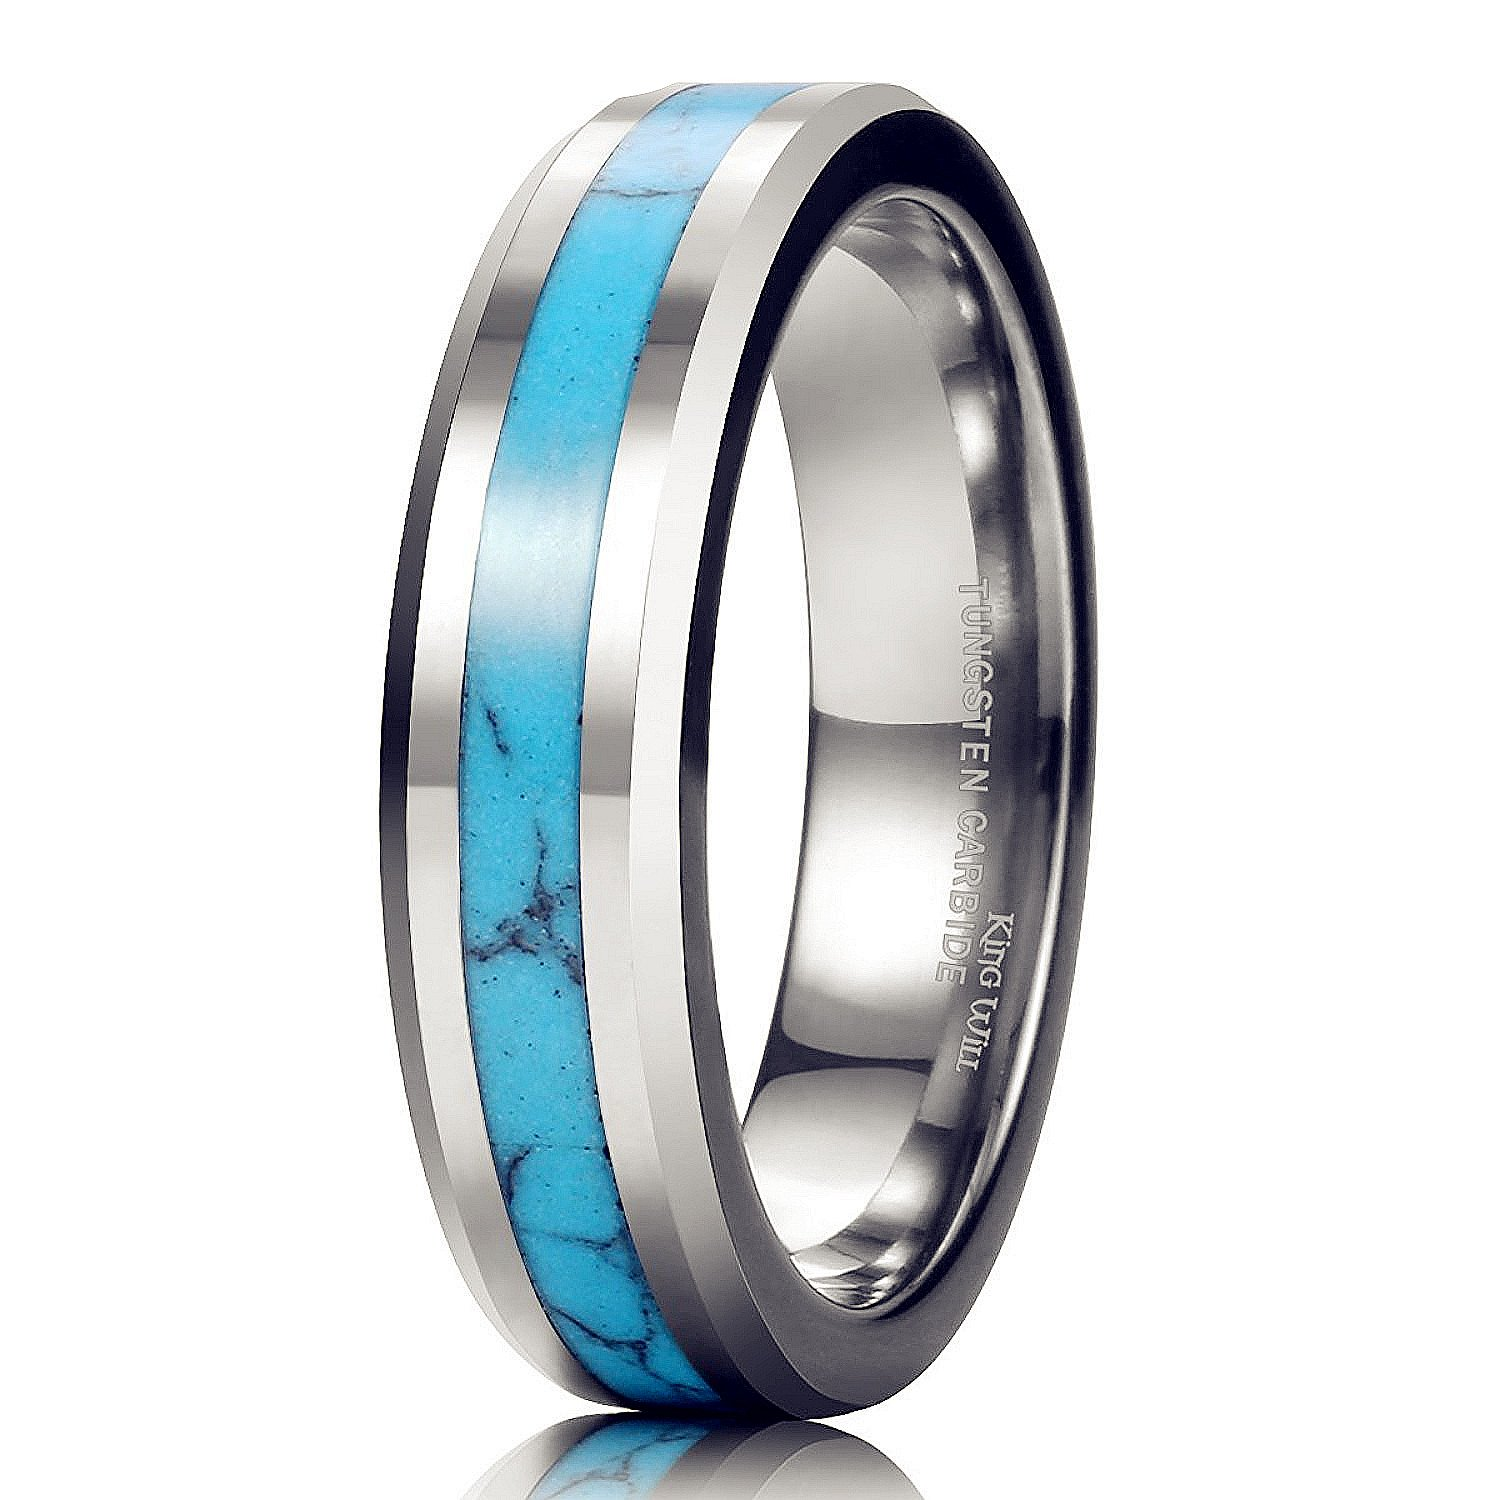 King Will NATURE 6mm Tungsten Metal Ring Blue Turquoise Inlay